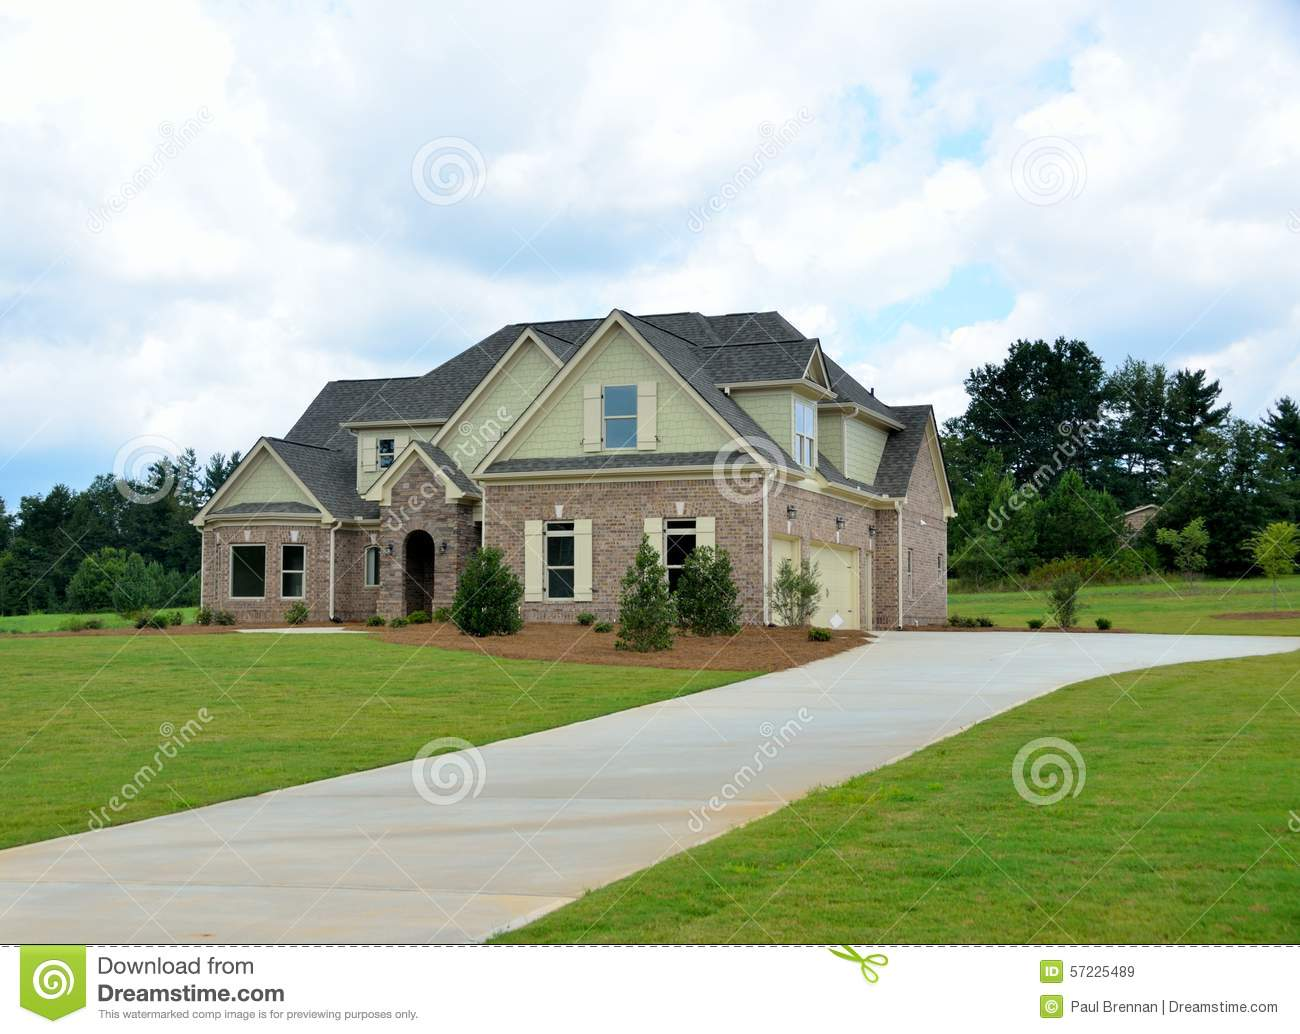 New two story brick home in georgia usa stock image for Roof height of 2 story house